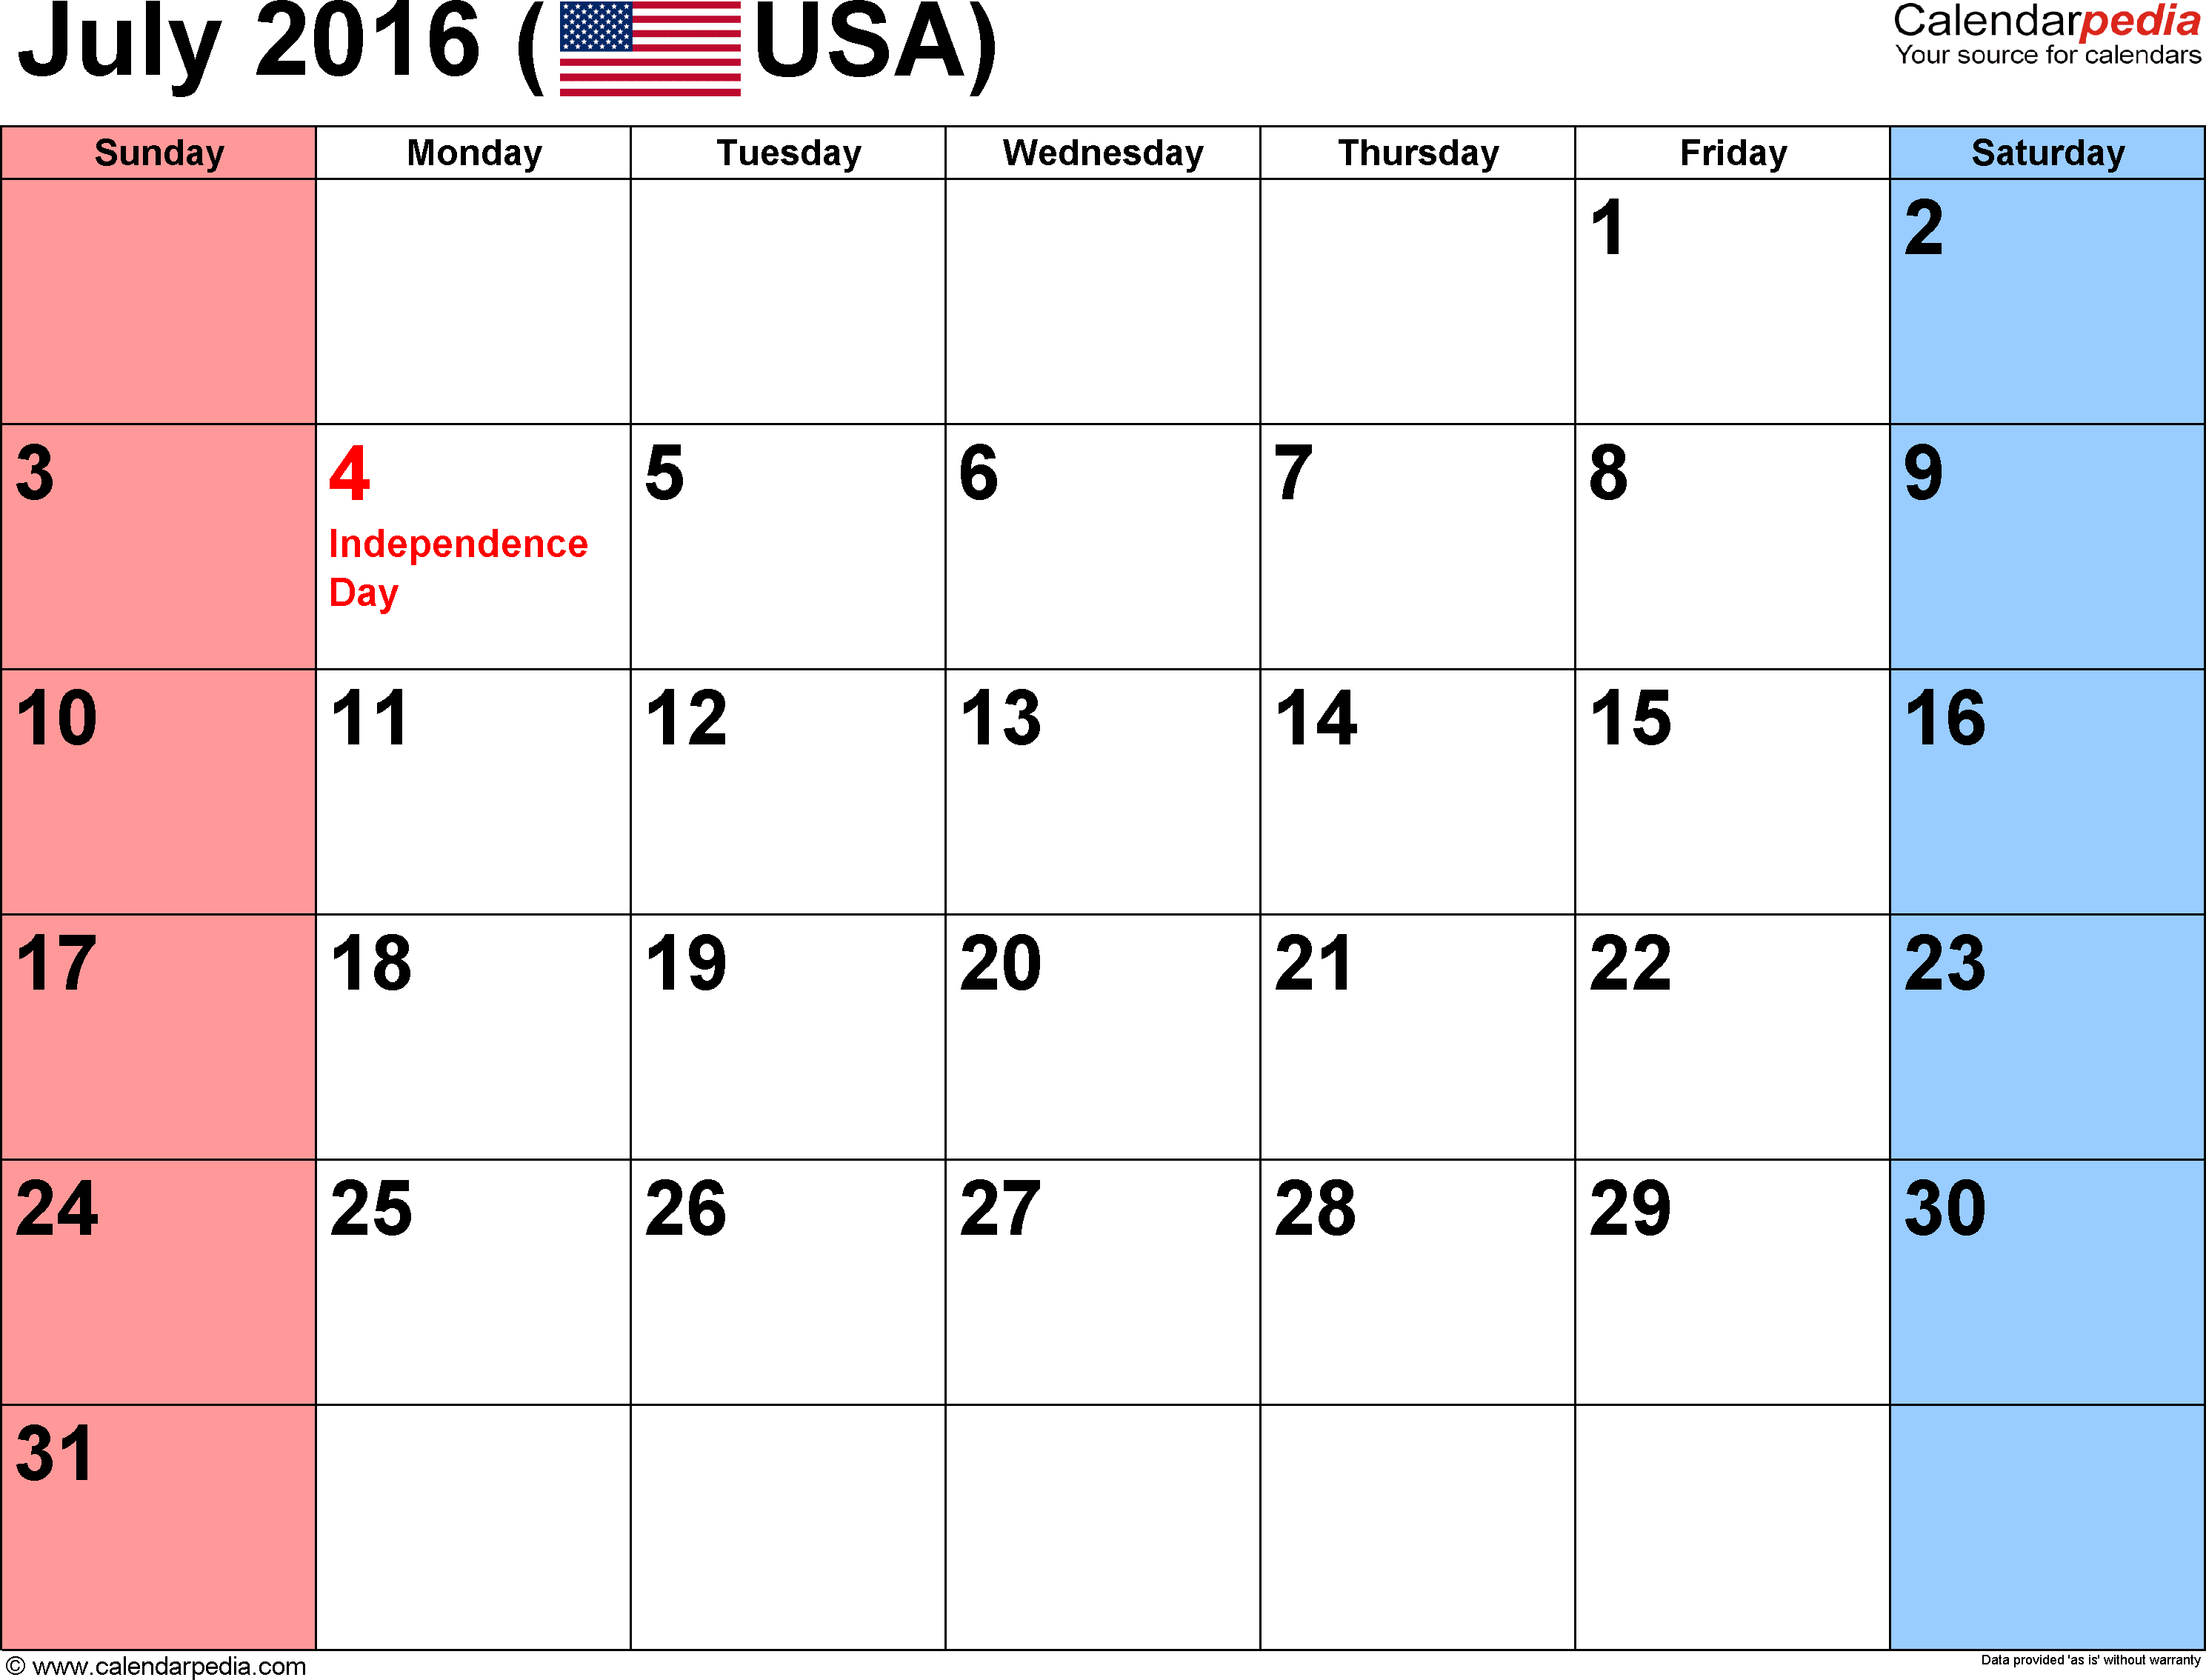 july 2016 calendar with holidays usa uk canada